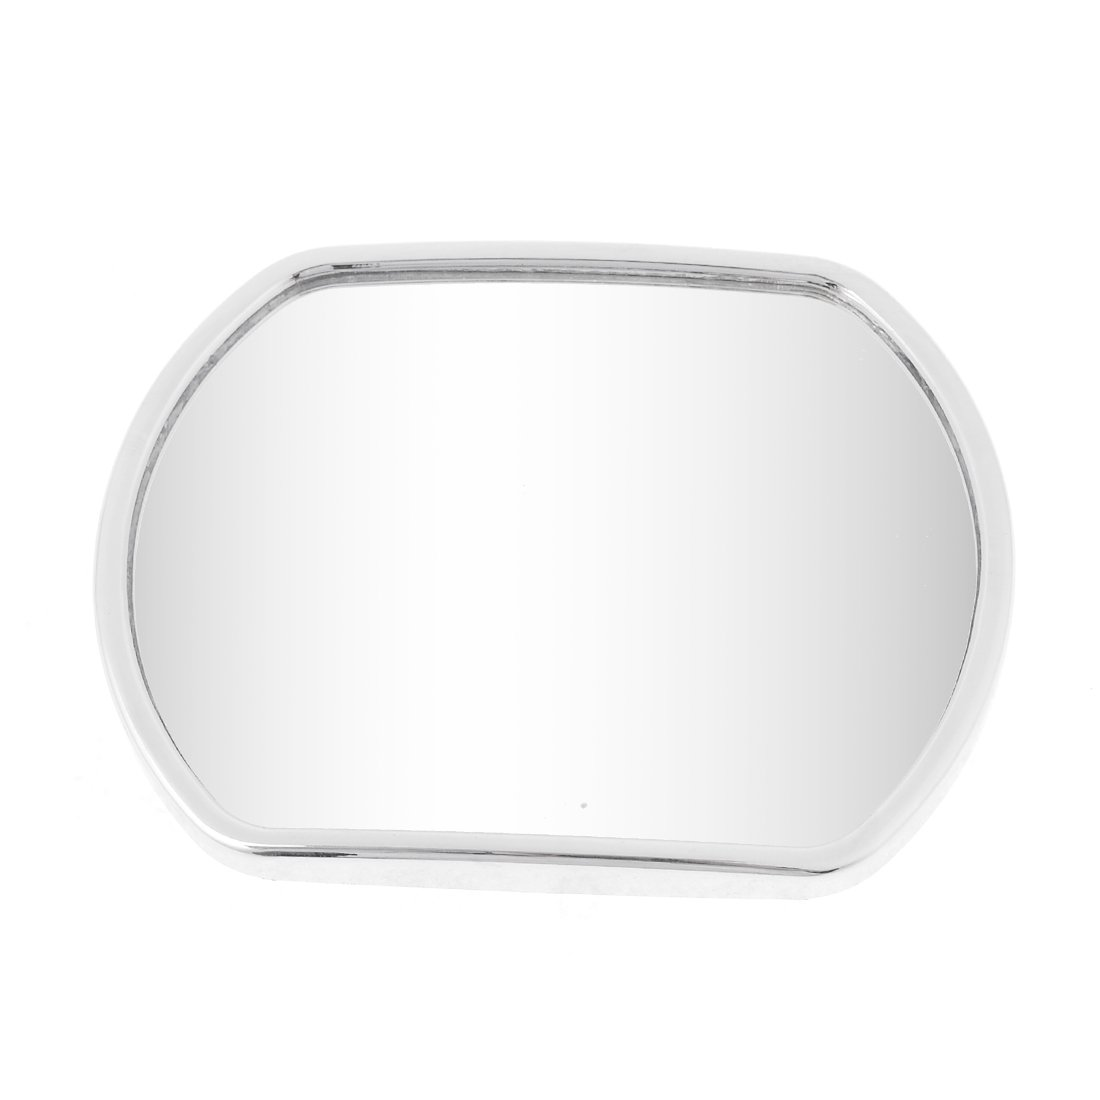 uxcell® Truck Car Stick-on Wide Angle Convex Rearview Blind Spot Mirror Silver Tone